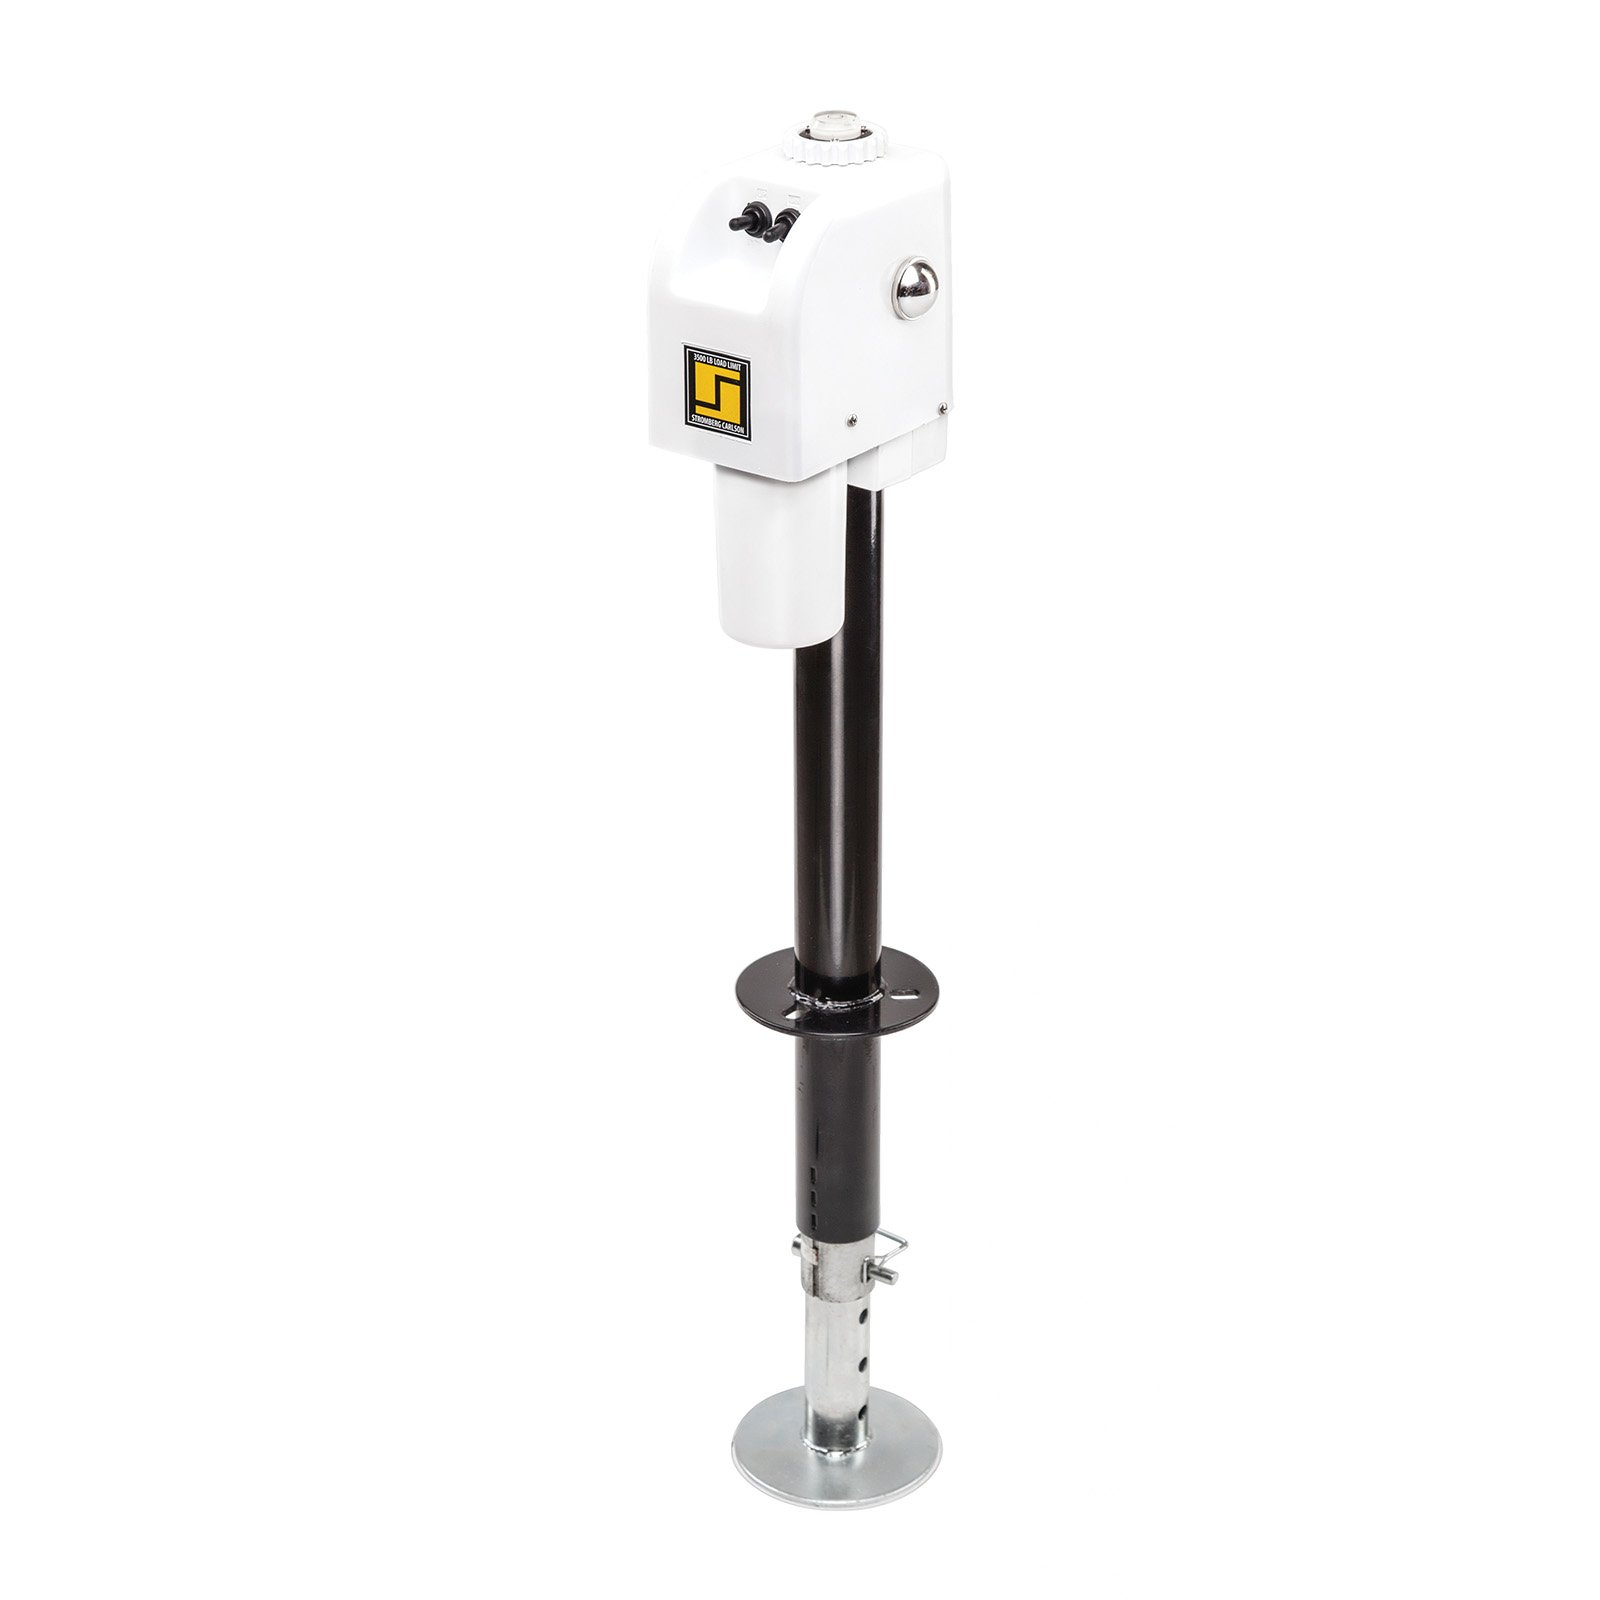 Stromberg Carlson White JET-3555 3500 lb. Electric Tongue Jack with Light by Stromberg Carlson